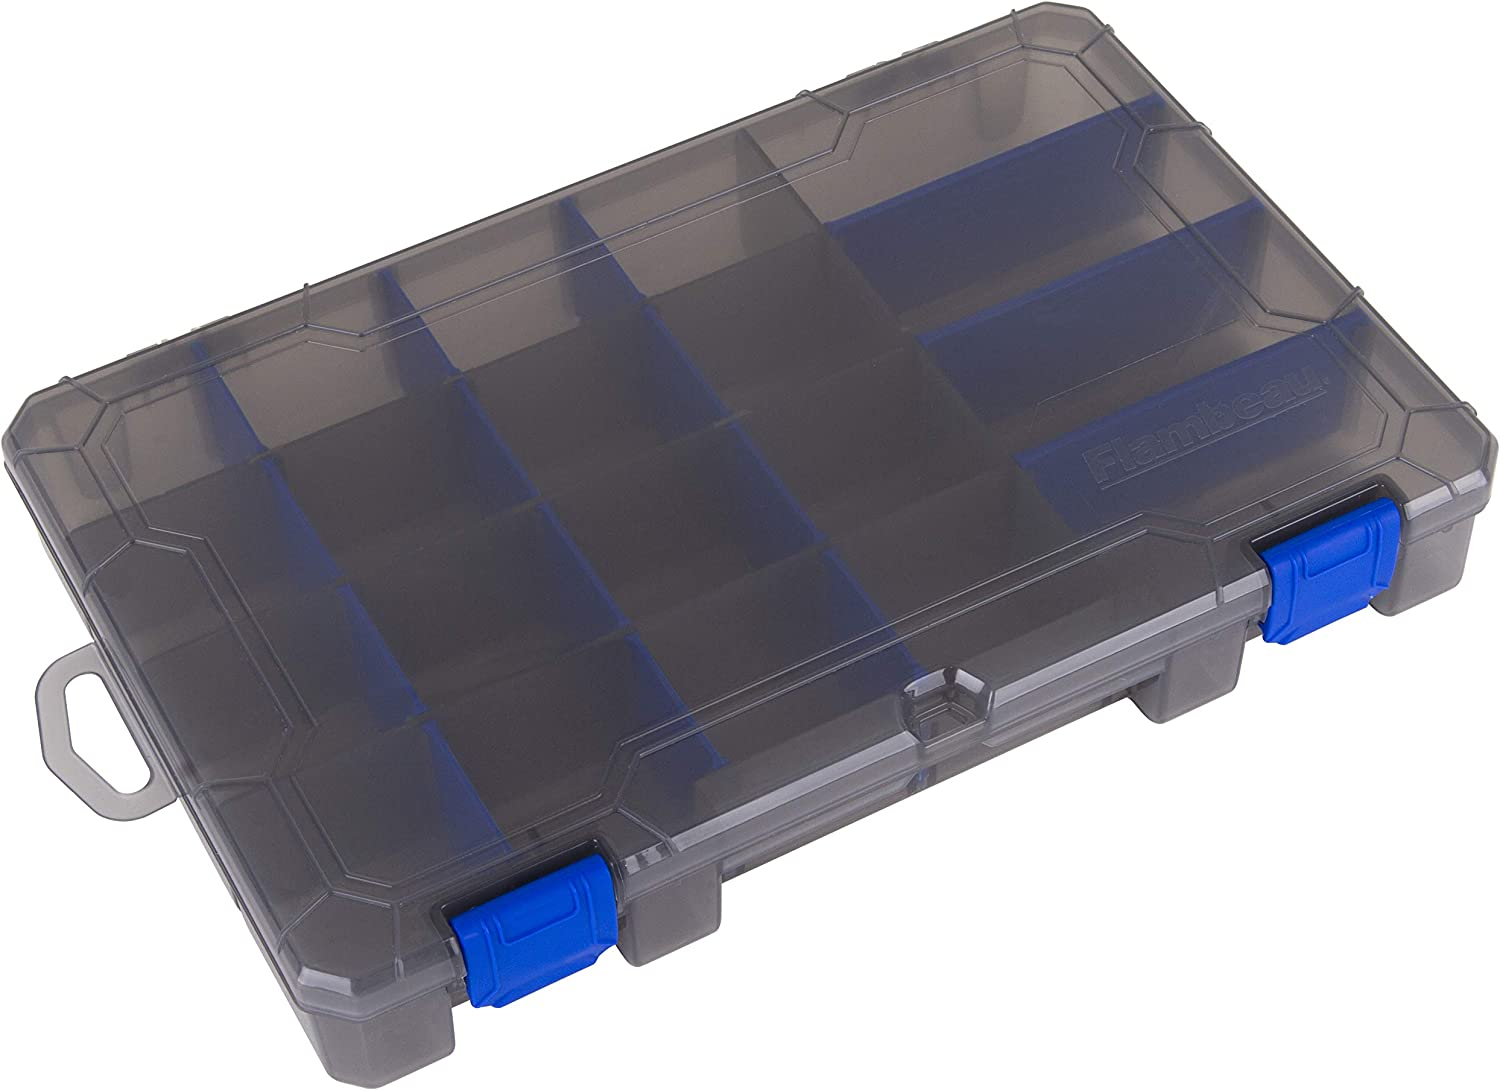 15 Dividers Flambeau Outdoors Zerust Max Tuff Trainer 20 Compartments